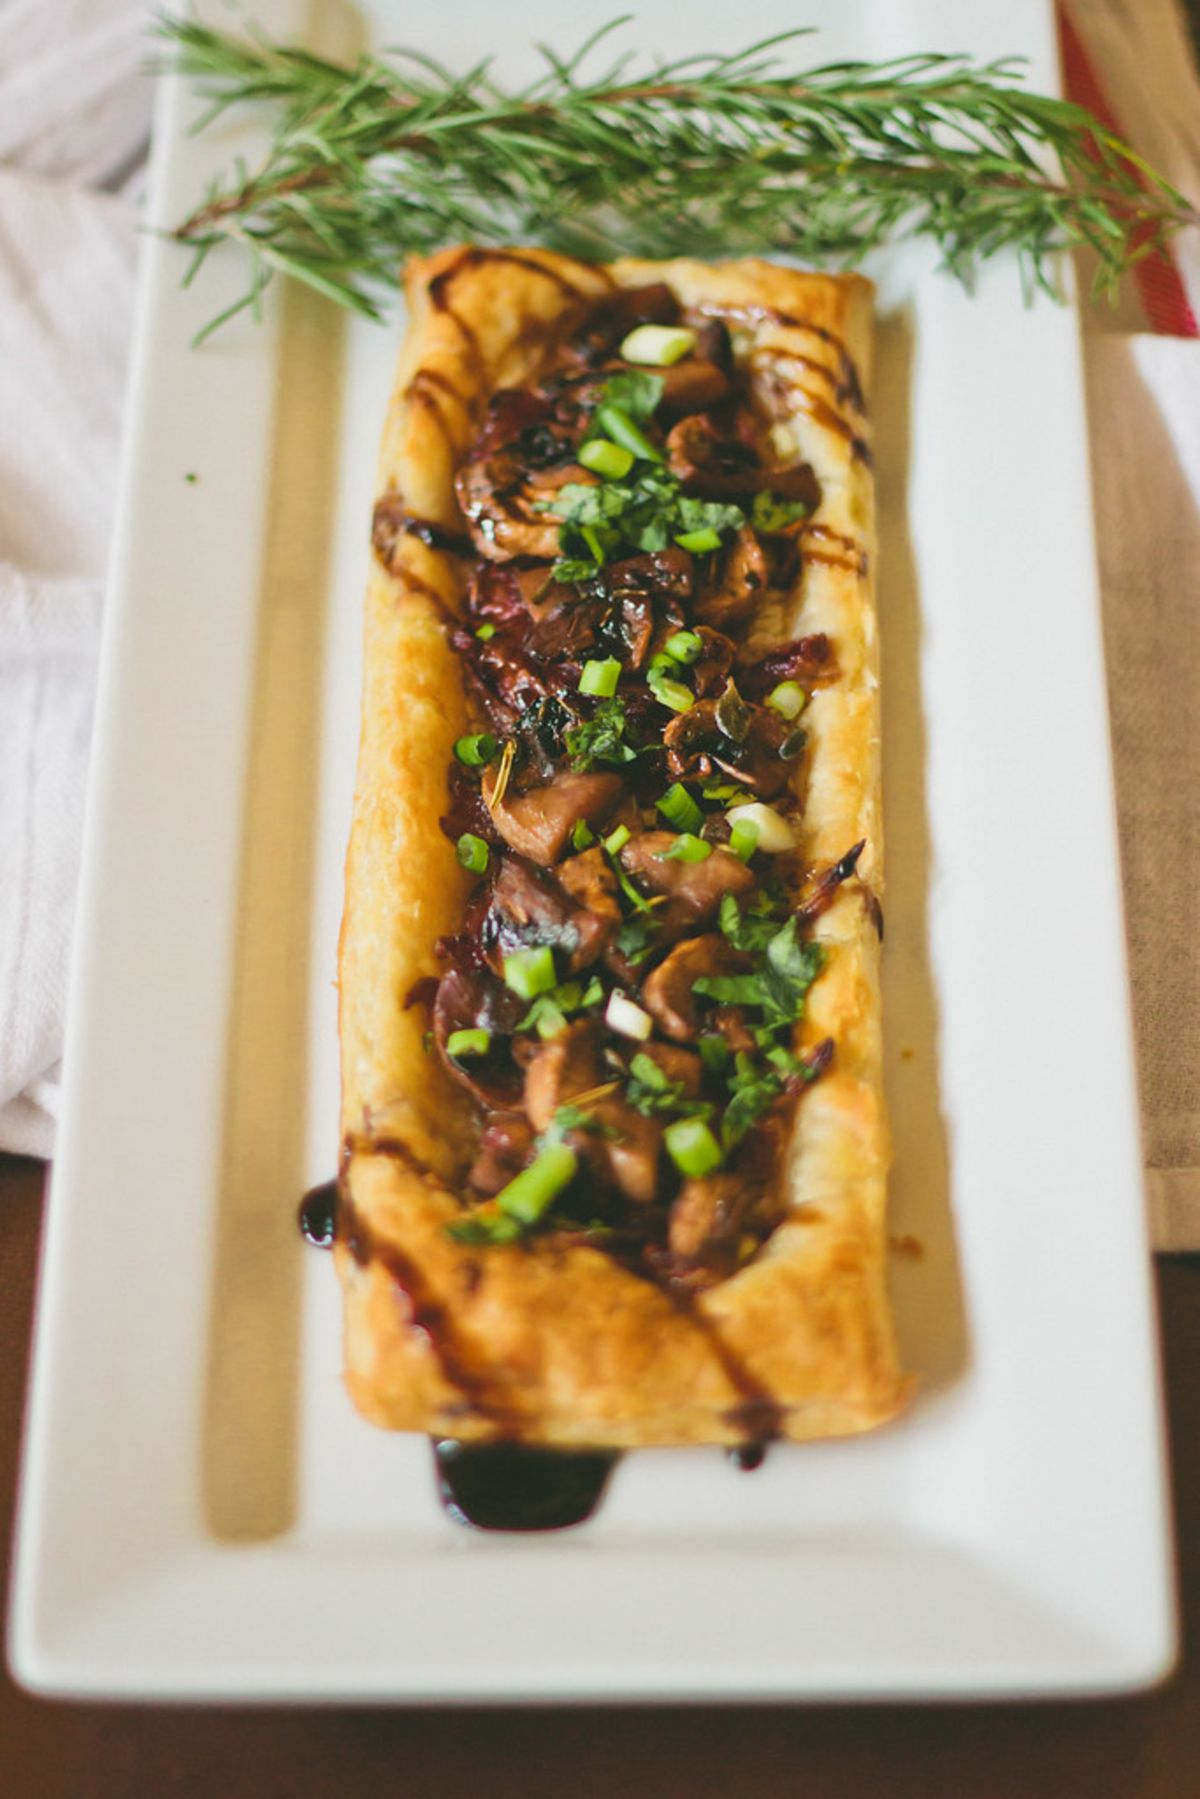 Caramelized Onion and Chanterelle Tart with Balsamic Guinness Glaze